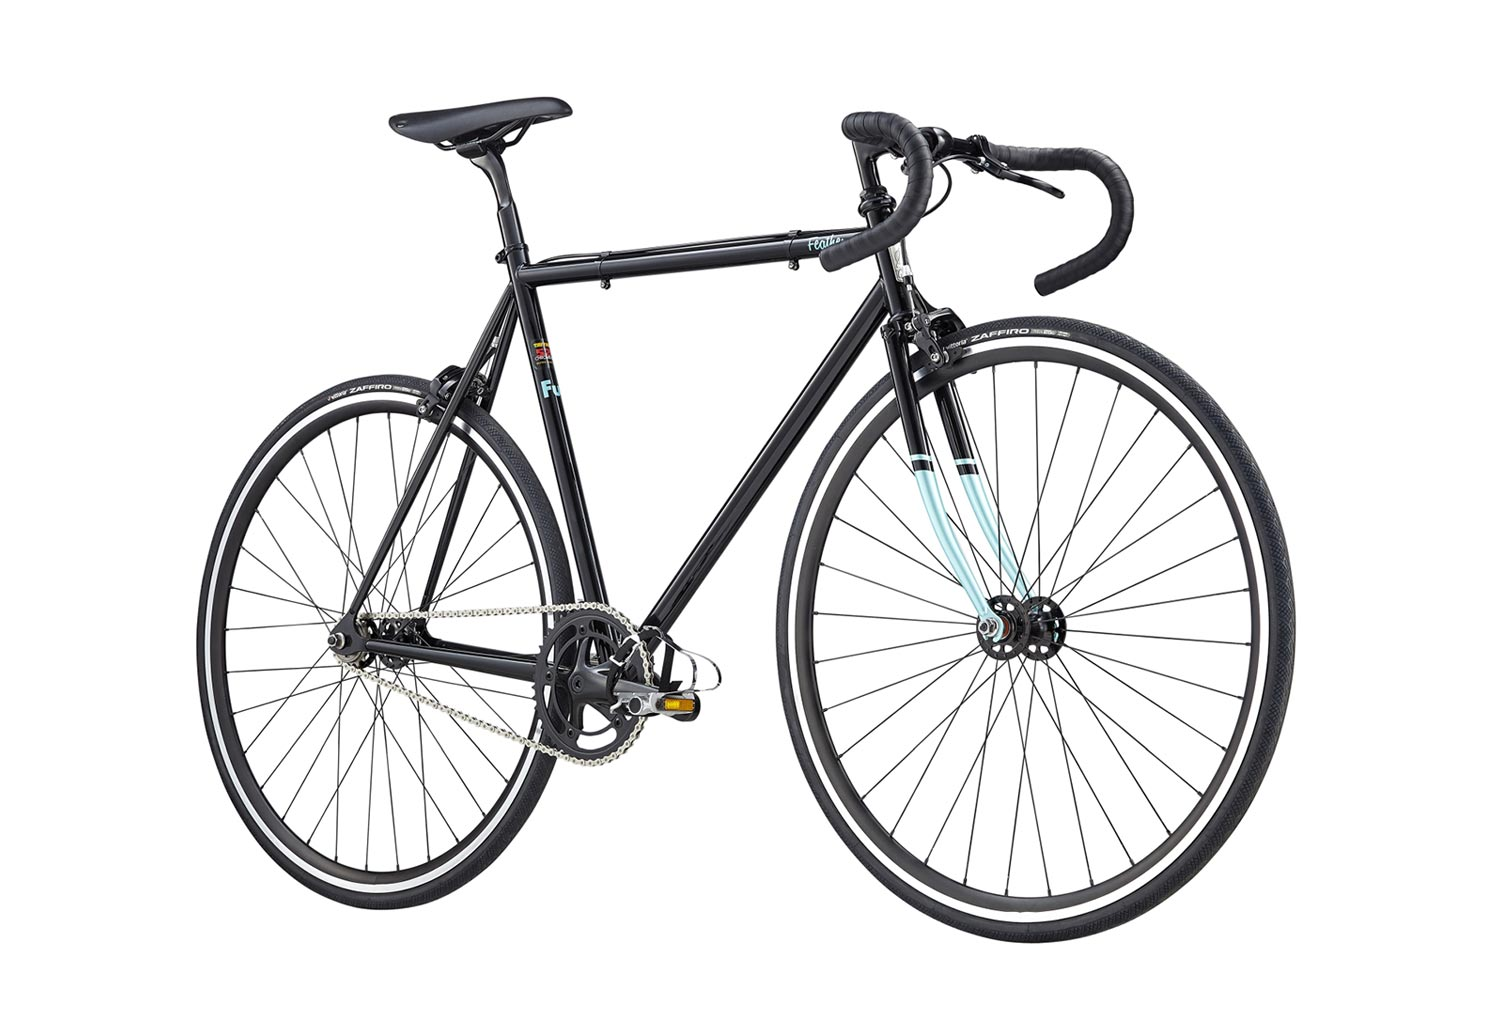 Cuadro Fuji Fuji Feather Fixie Bike 2019 Negro Alltricks Es